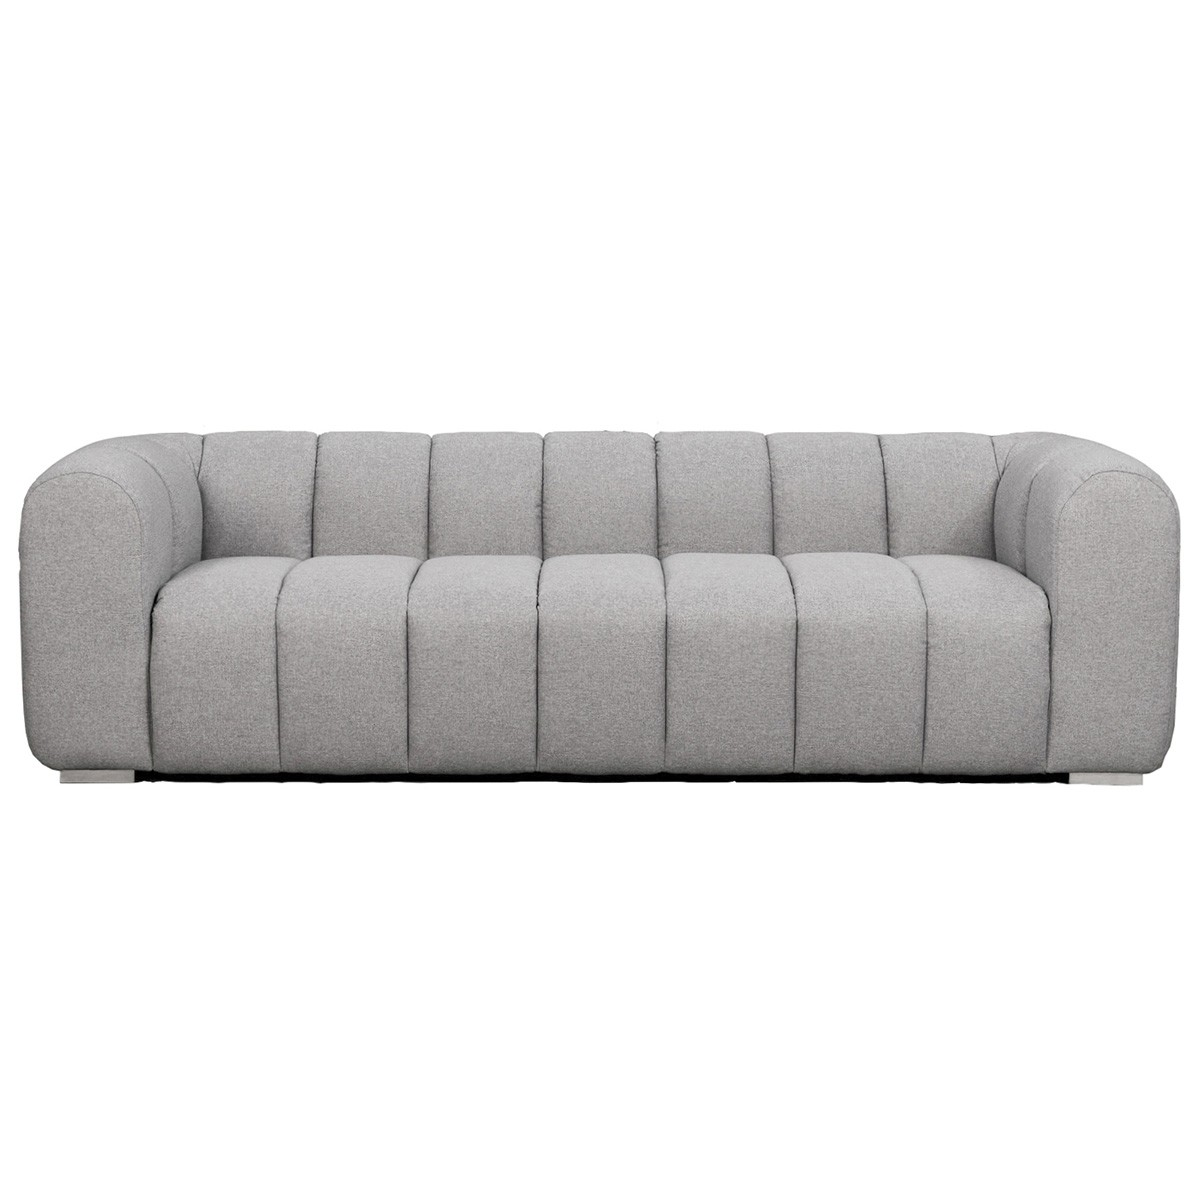 Clarence Fabric Sofa, 4 Seater, Grey